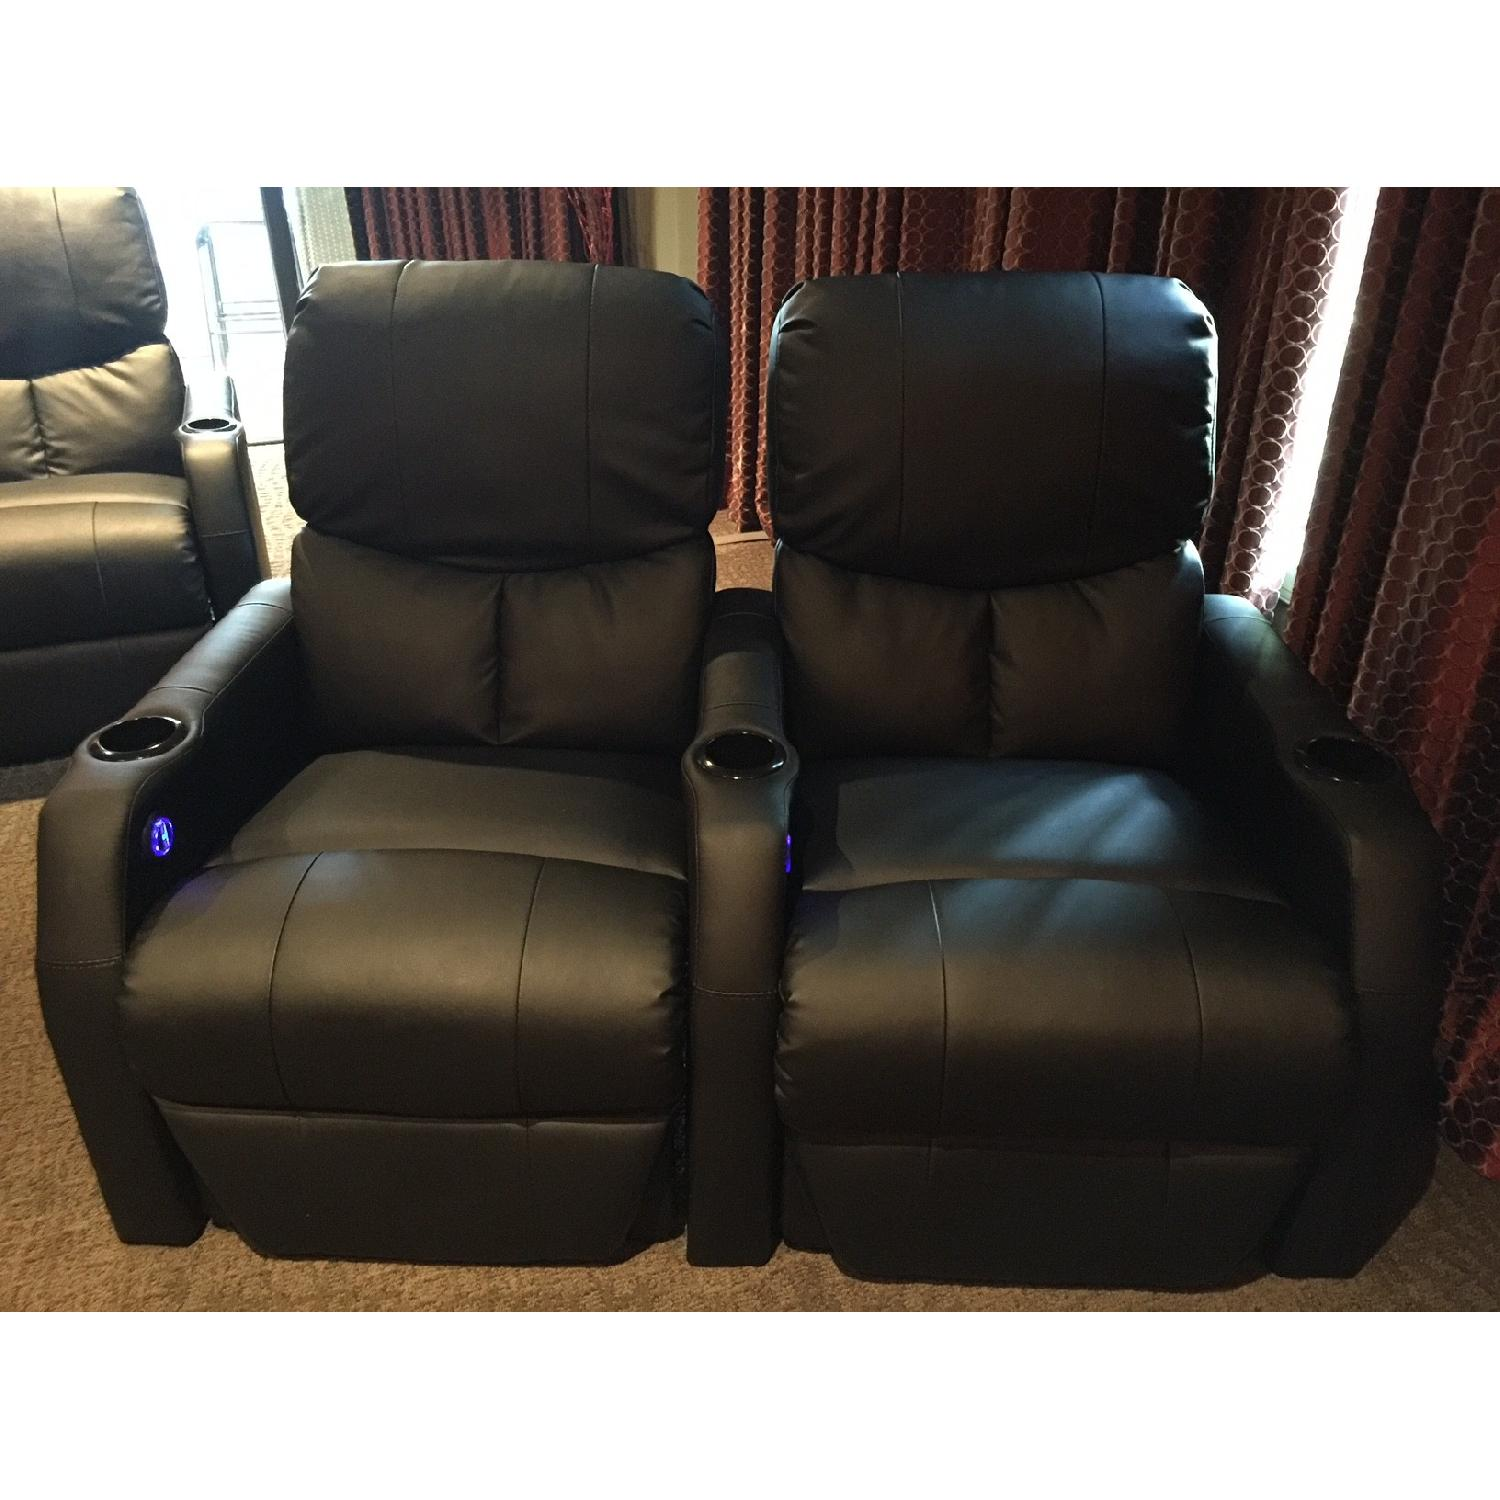 SeatCraft Home Theater Recliners - image-1